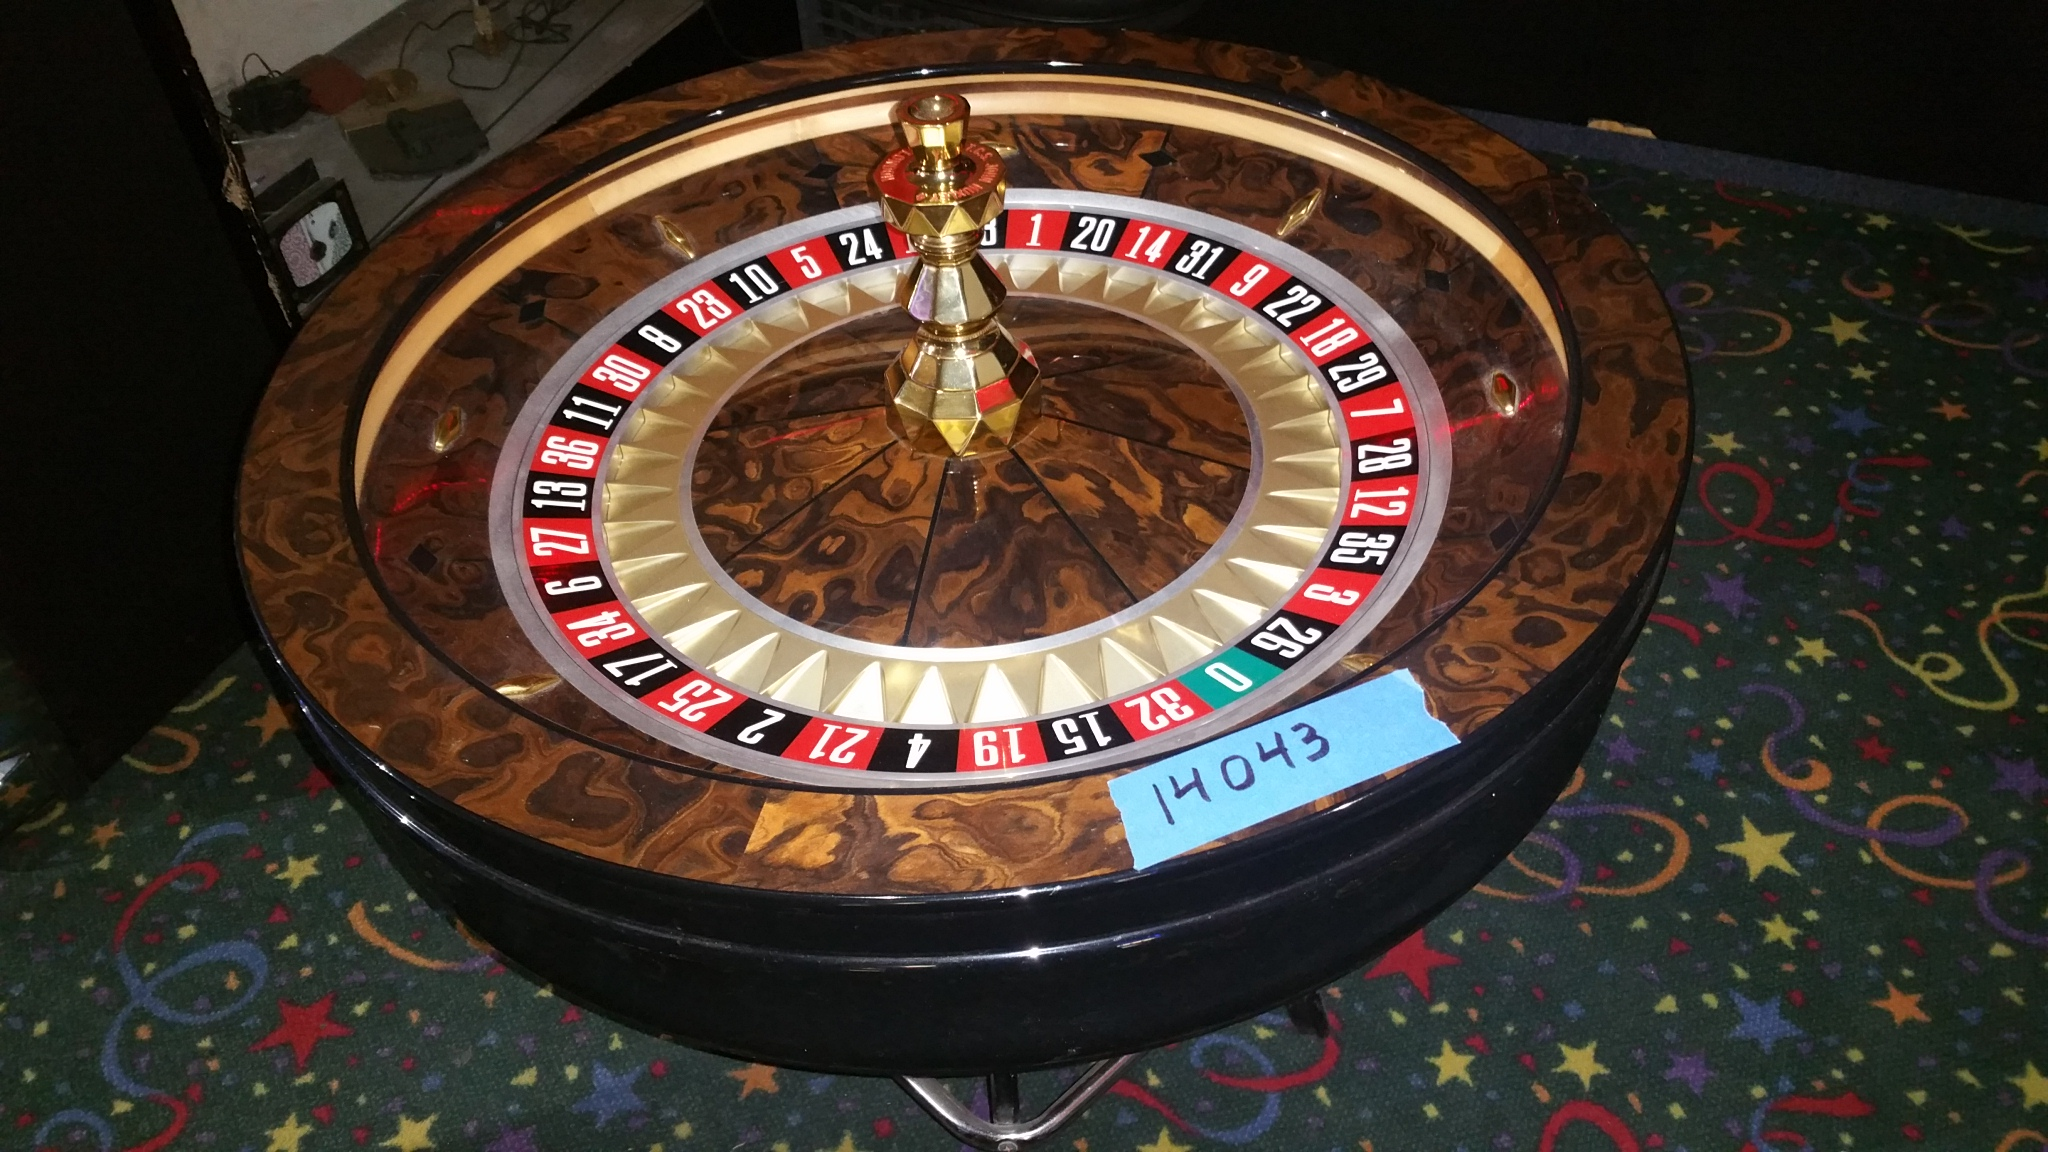 All inclusive vacations roulette